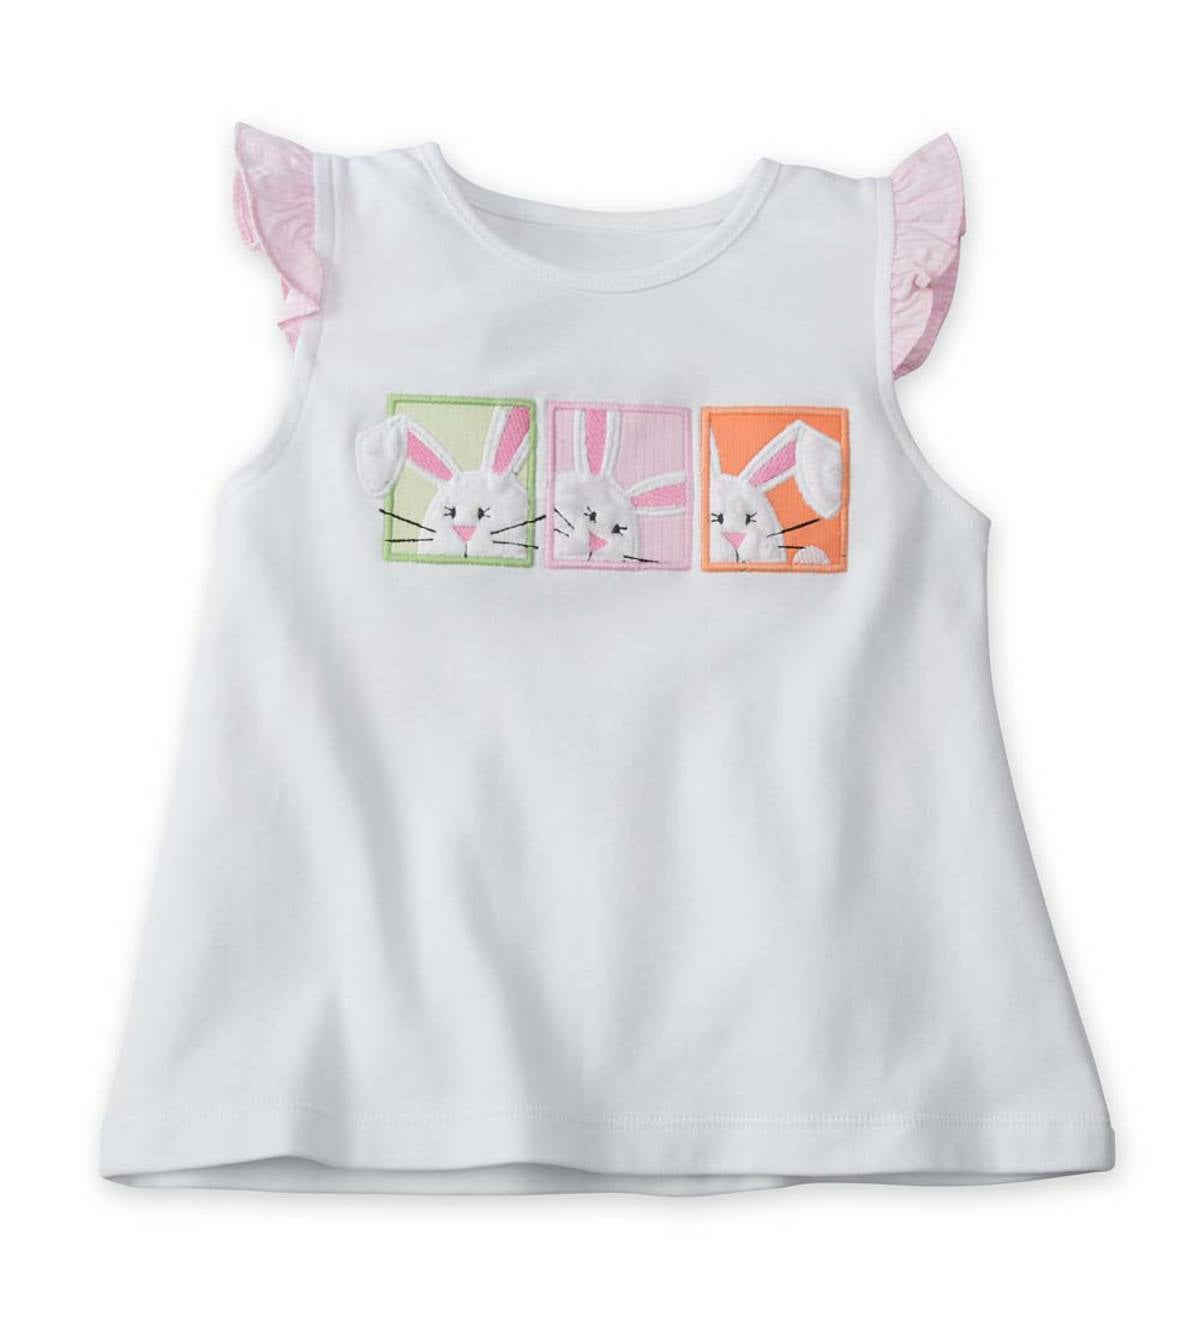 Ruffle Sleeve Bunny Appliques Tee - White - 4T